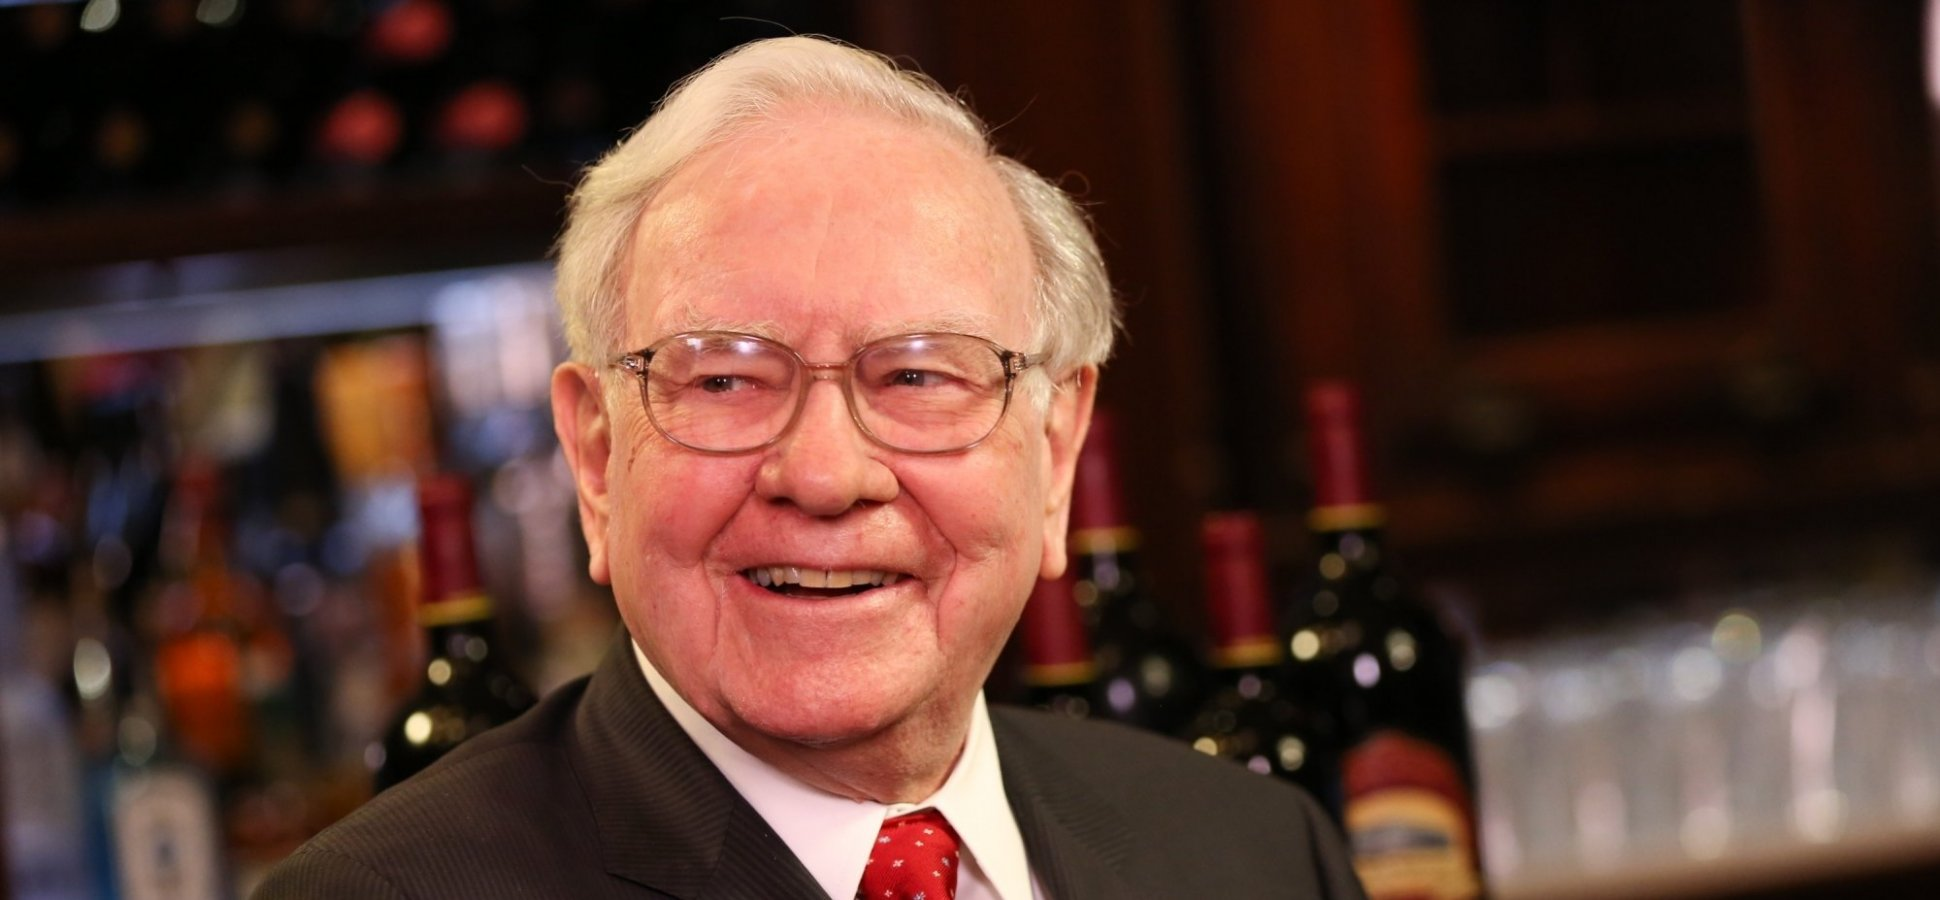 A lunch date was sold by Warren Buffet every year